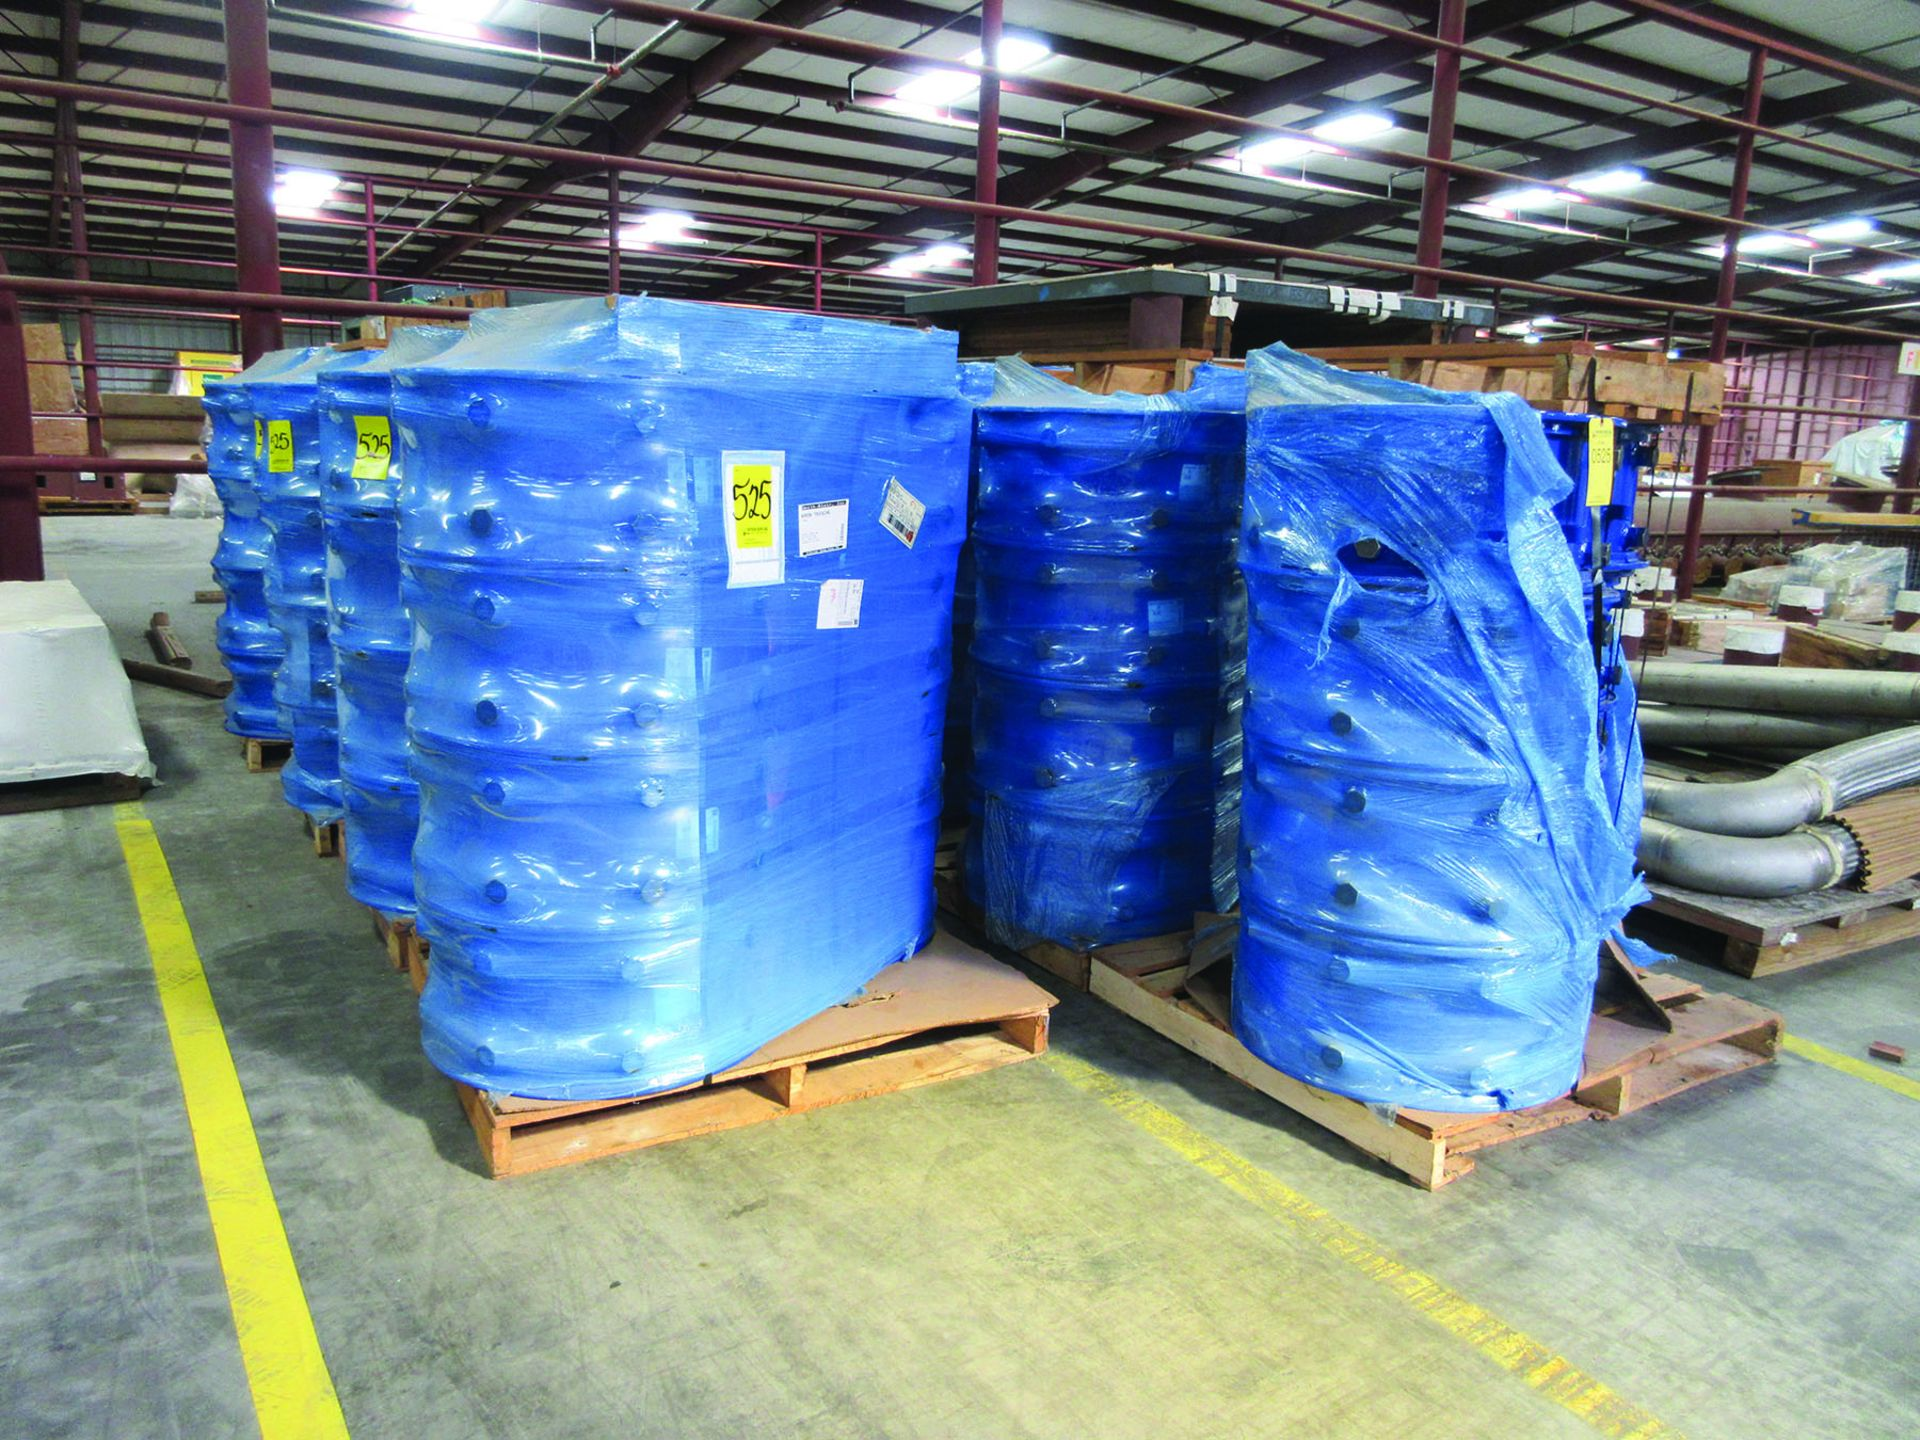 FIBREX INSULATION 4'' X 24'' X 48'' (4) PALLETS, COUPLING GUARDS, (72) 24'' STEEL LOCK COUPLINGS, - Image 4 of 5